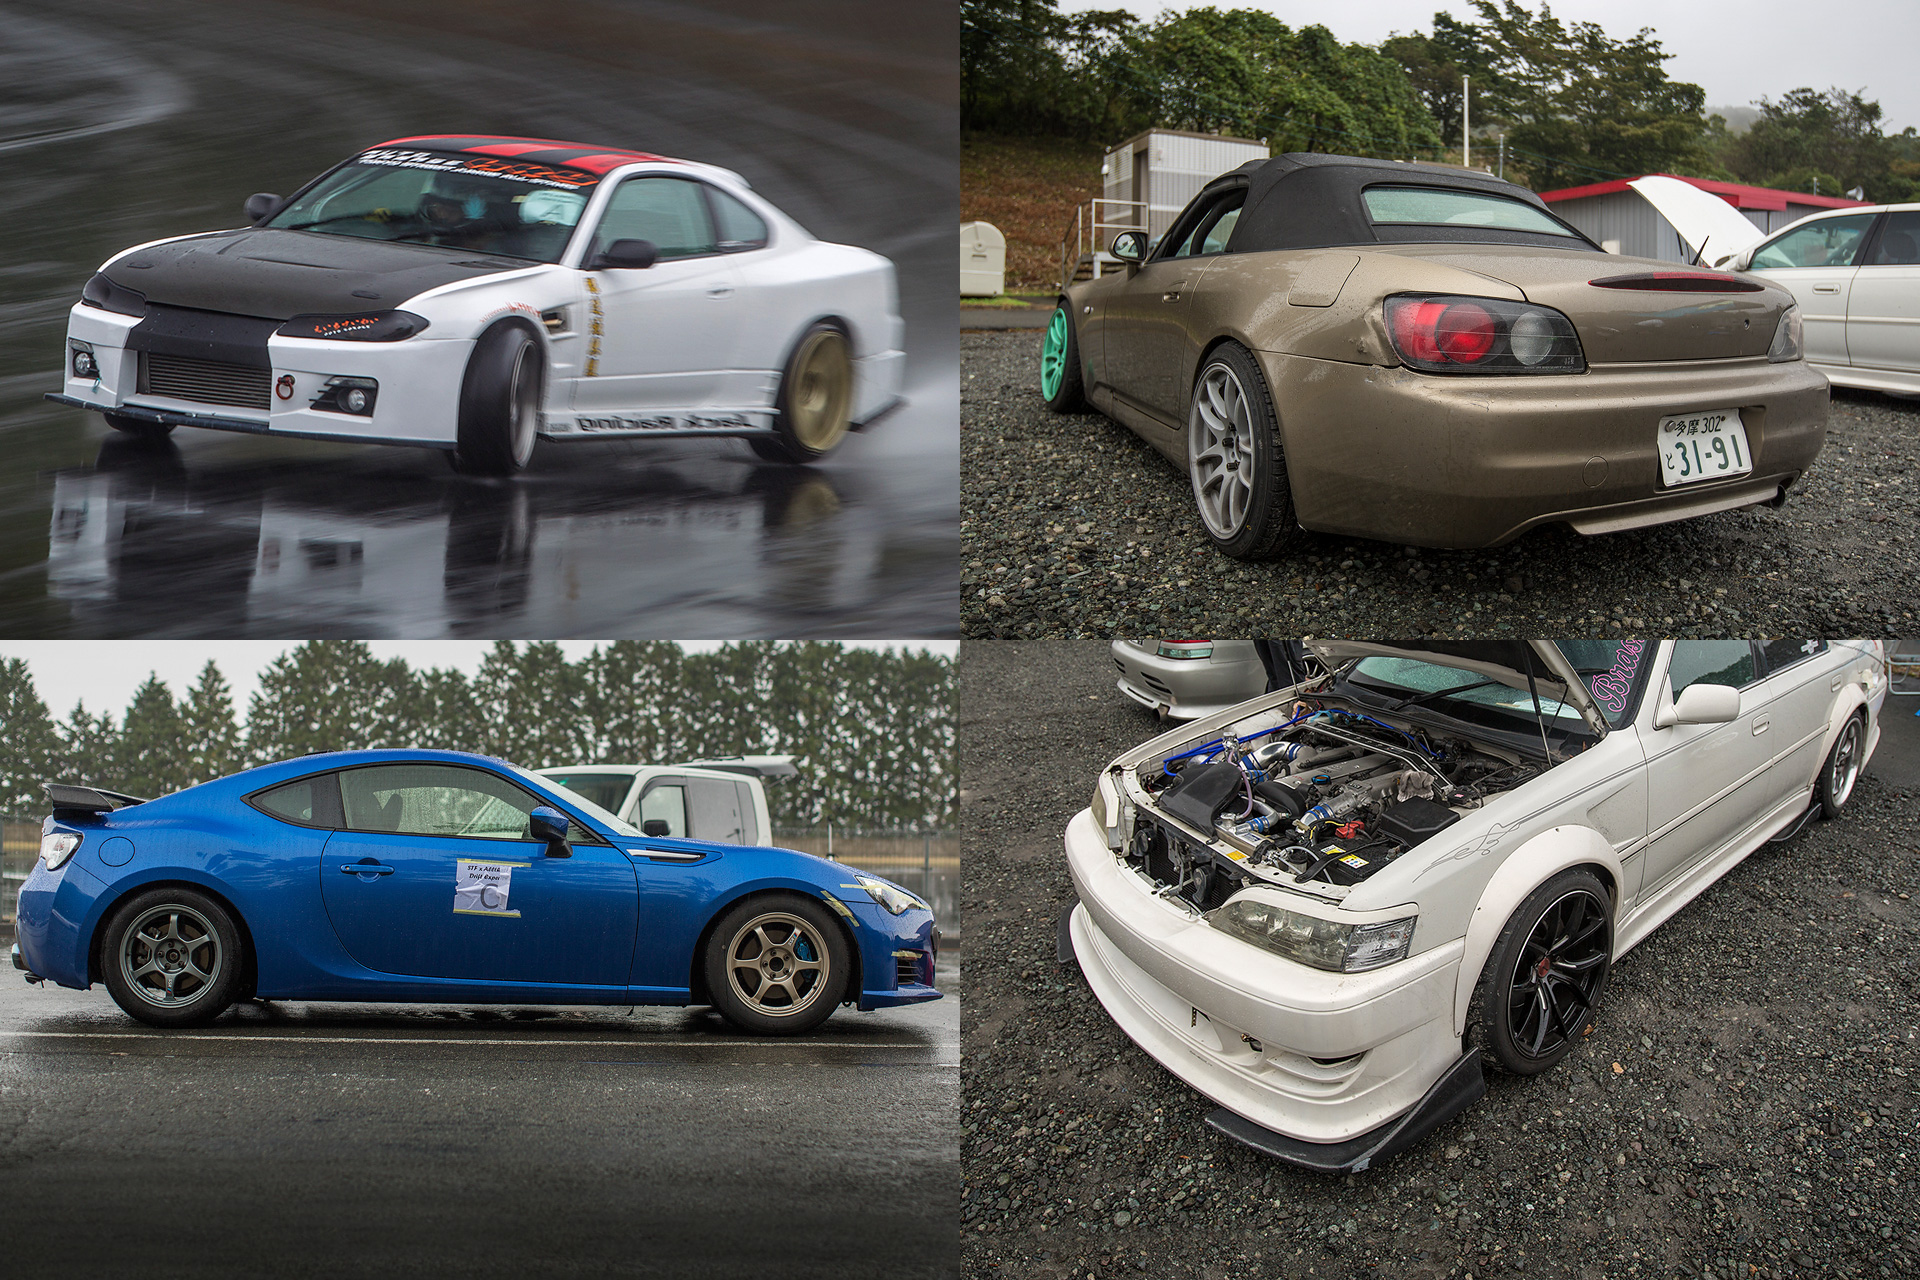 Temple Of Vtec >> Cars Of Japan's Grassroots Drift Scene - Speedhunters